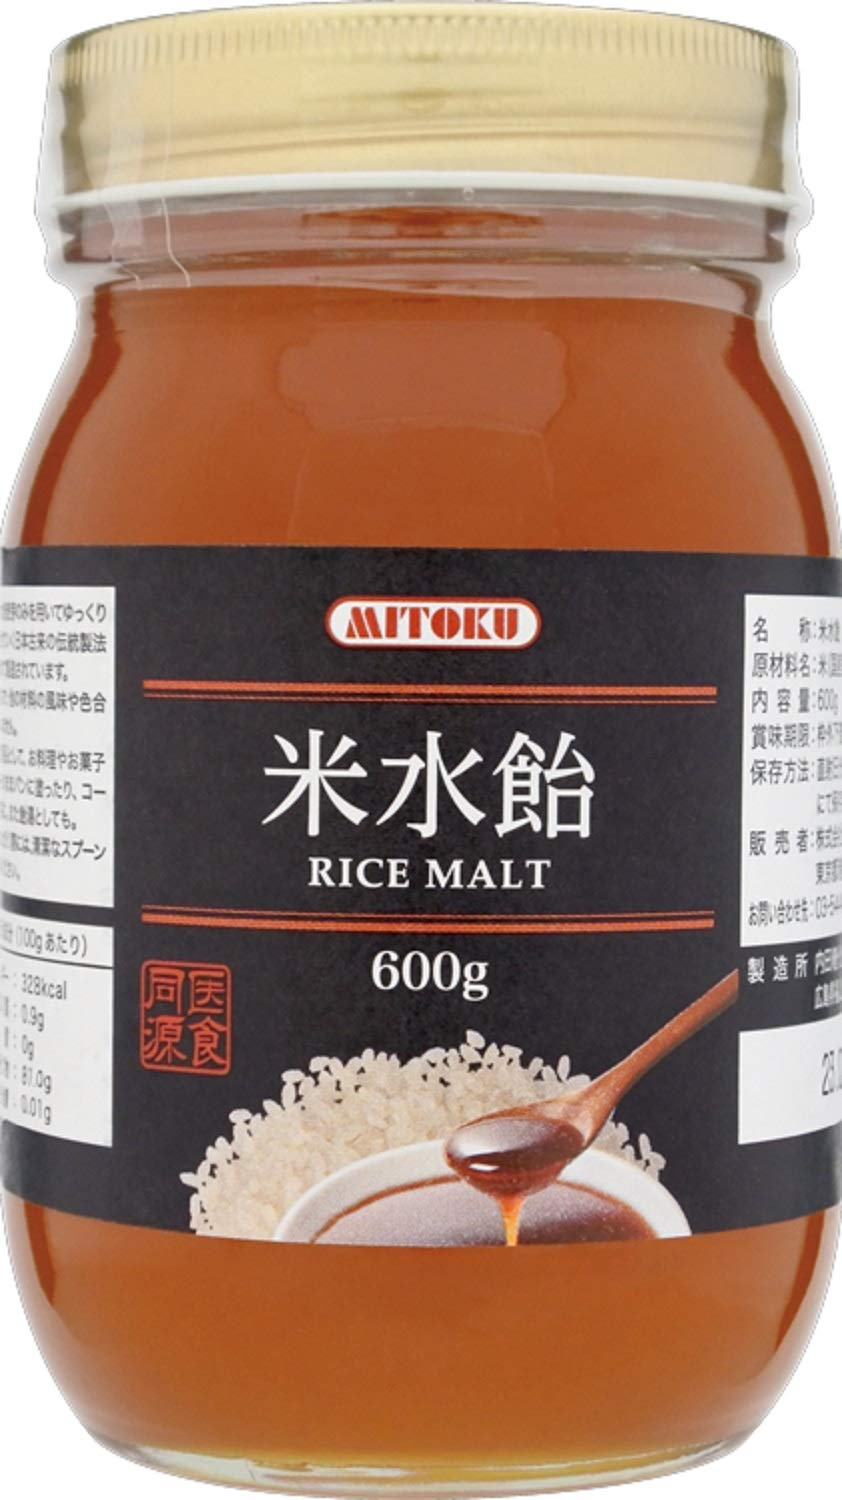 Mitoku Department store rice syrup 600g Popular brand in the world